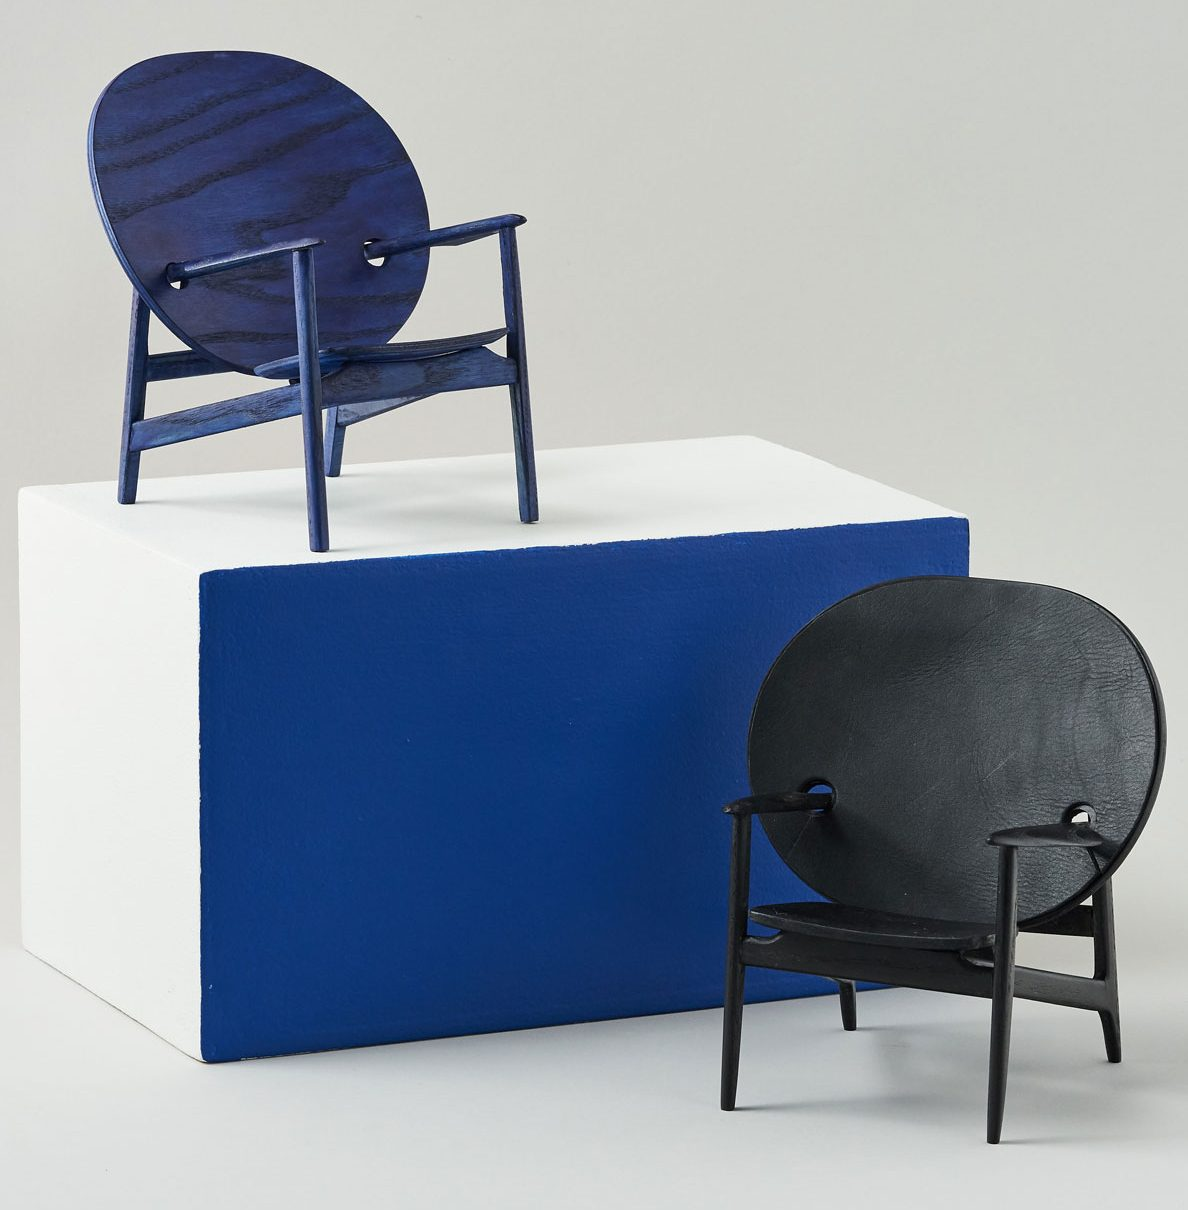 Mac-Collins-Iklwa-maquettes-for-ash-lounge-chair-2018-e1561458661115.jpg